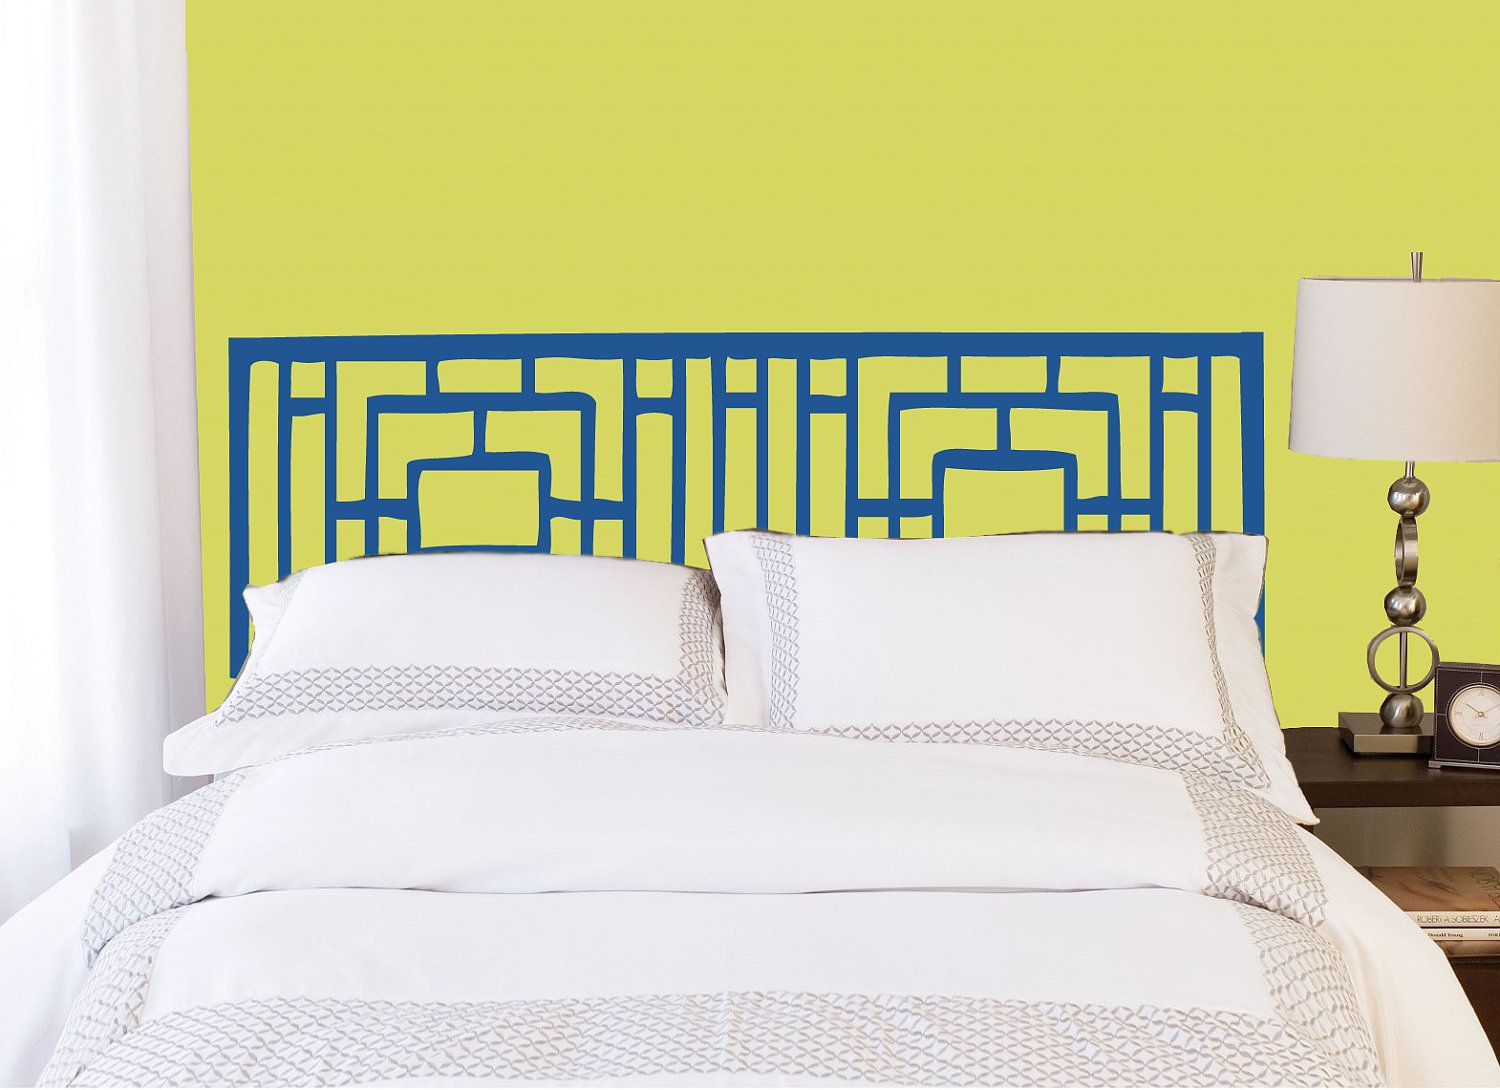 Full/Double Headboard decal - Vinyl wall sticker decal - Geometric ...